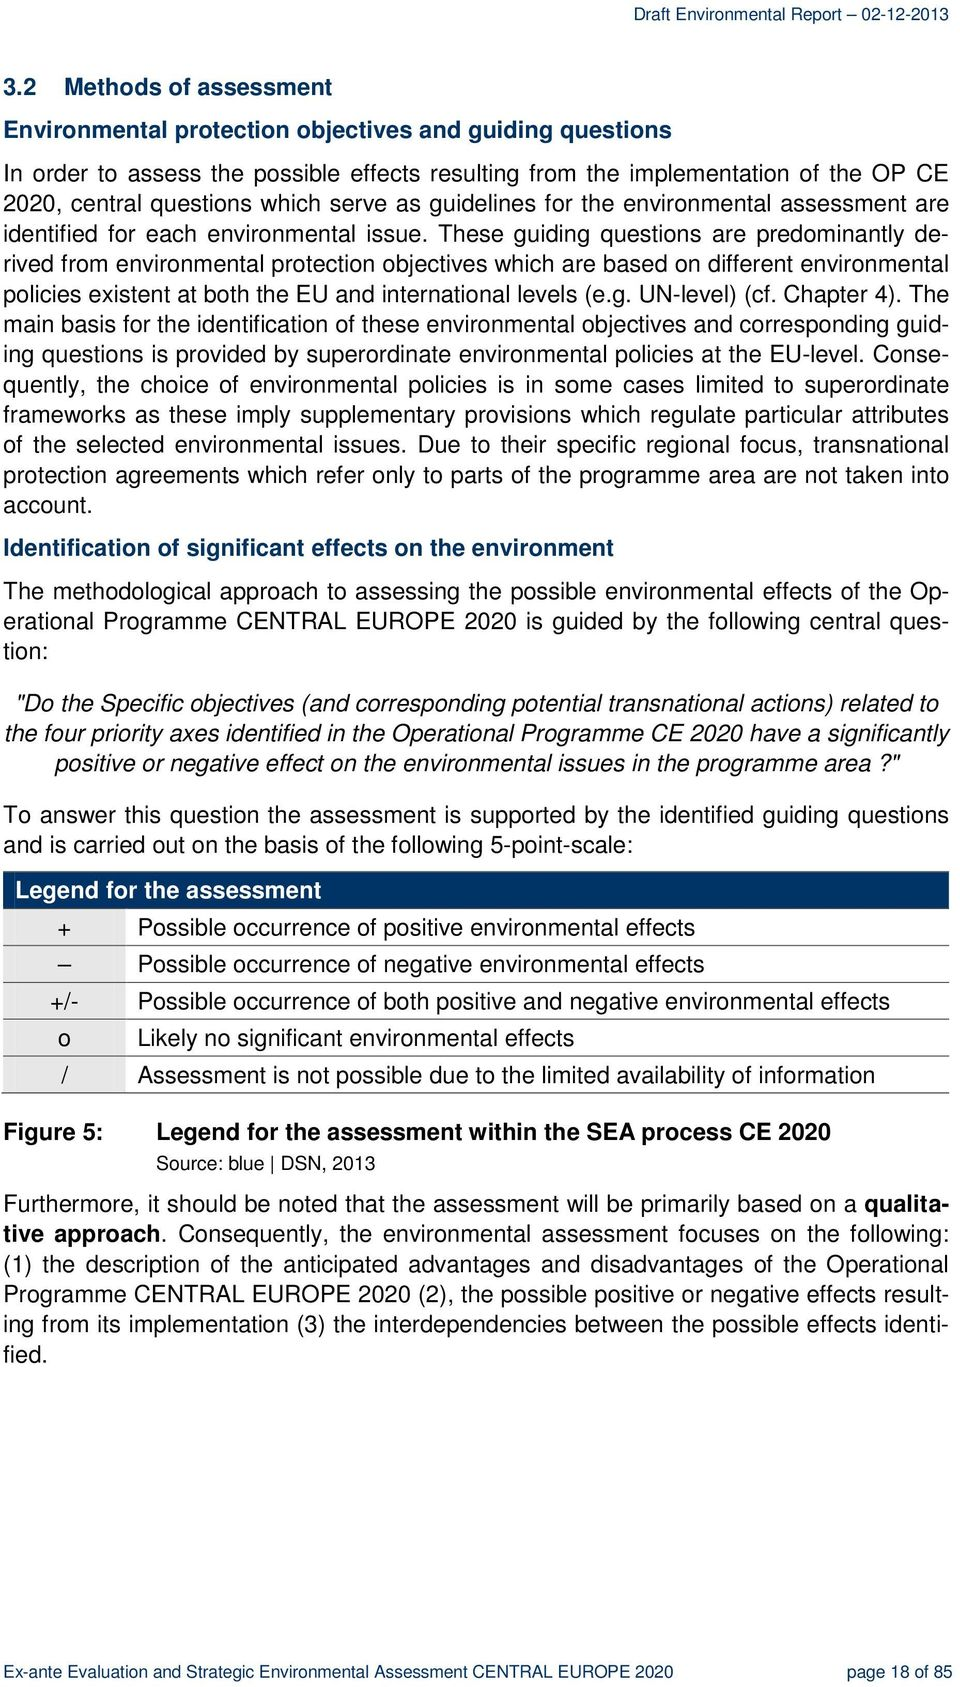 These guiding questions are predominantly derived from environmental protection objectives which are based on different environmental policies existent at both the EU and international levels (e.g. UN-level) (cf.